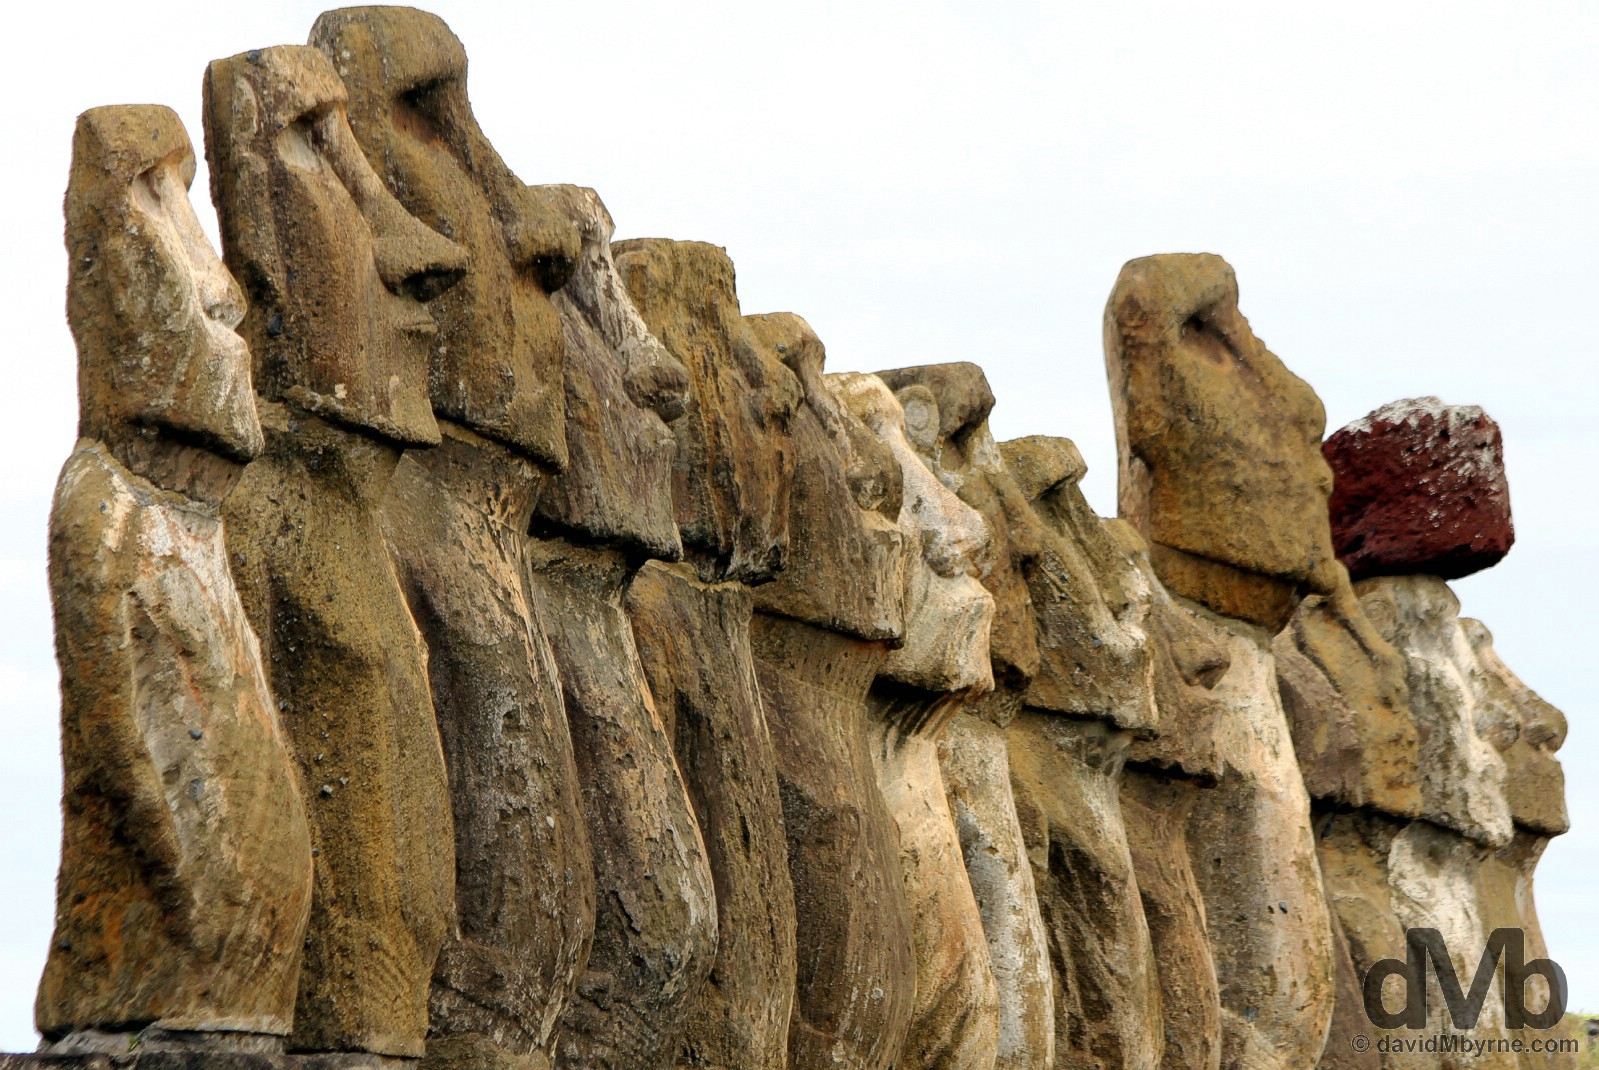 Lineup. The 15 Moai of Ahu Tongariki on Easter Island, Chile. September 29, 2015.